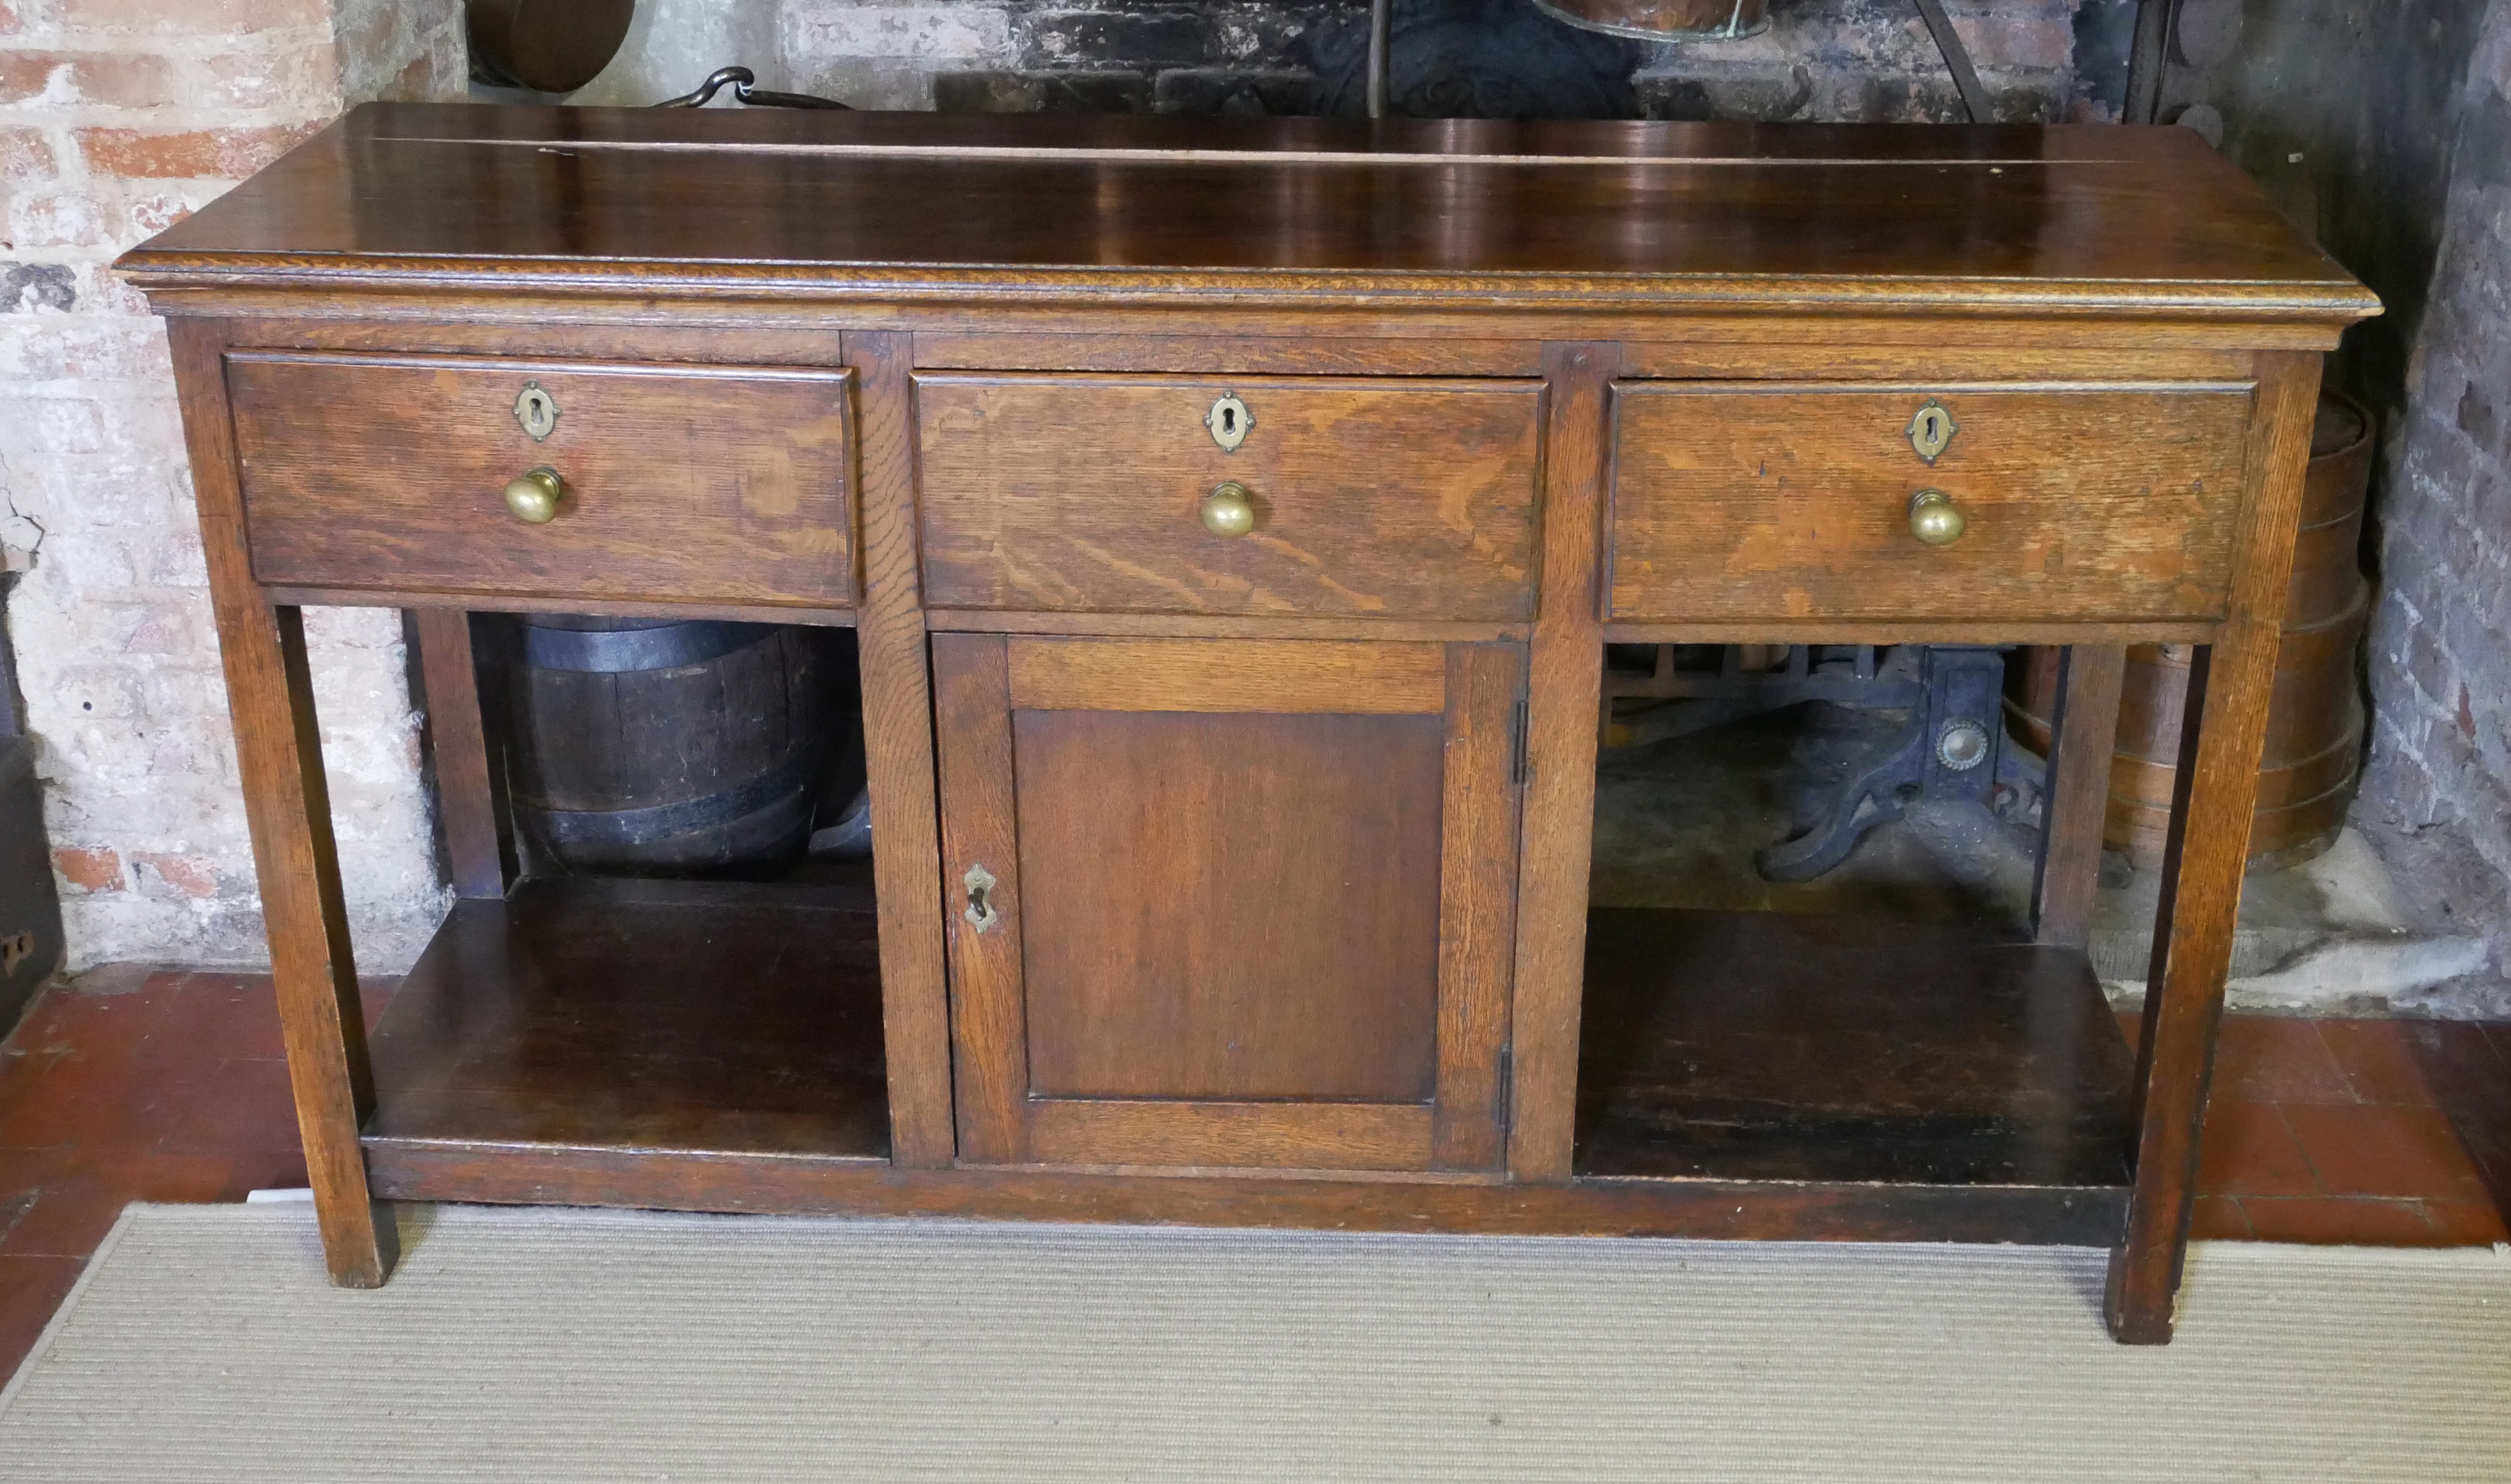 A 19TH CENTURY OAK DRESSER With three drawers above a central cupboard, on square legs. (152cm x